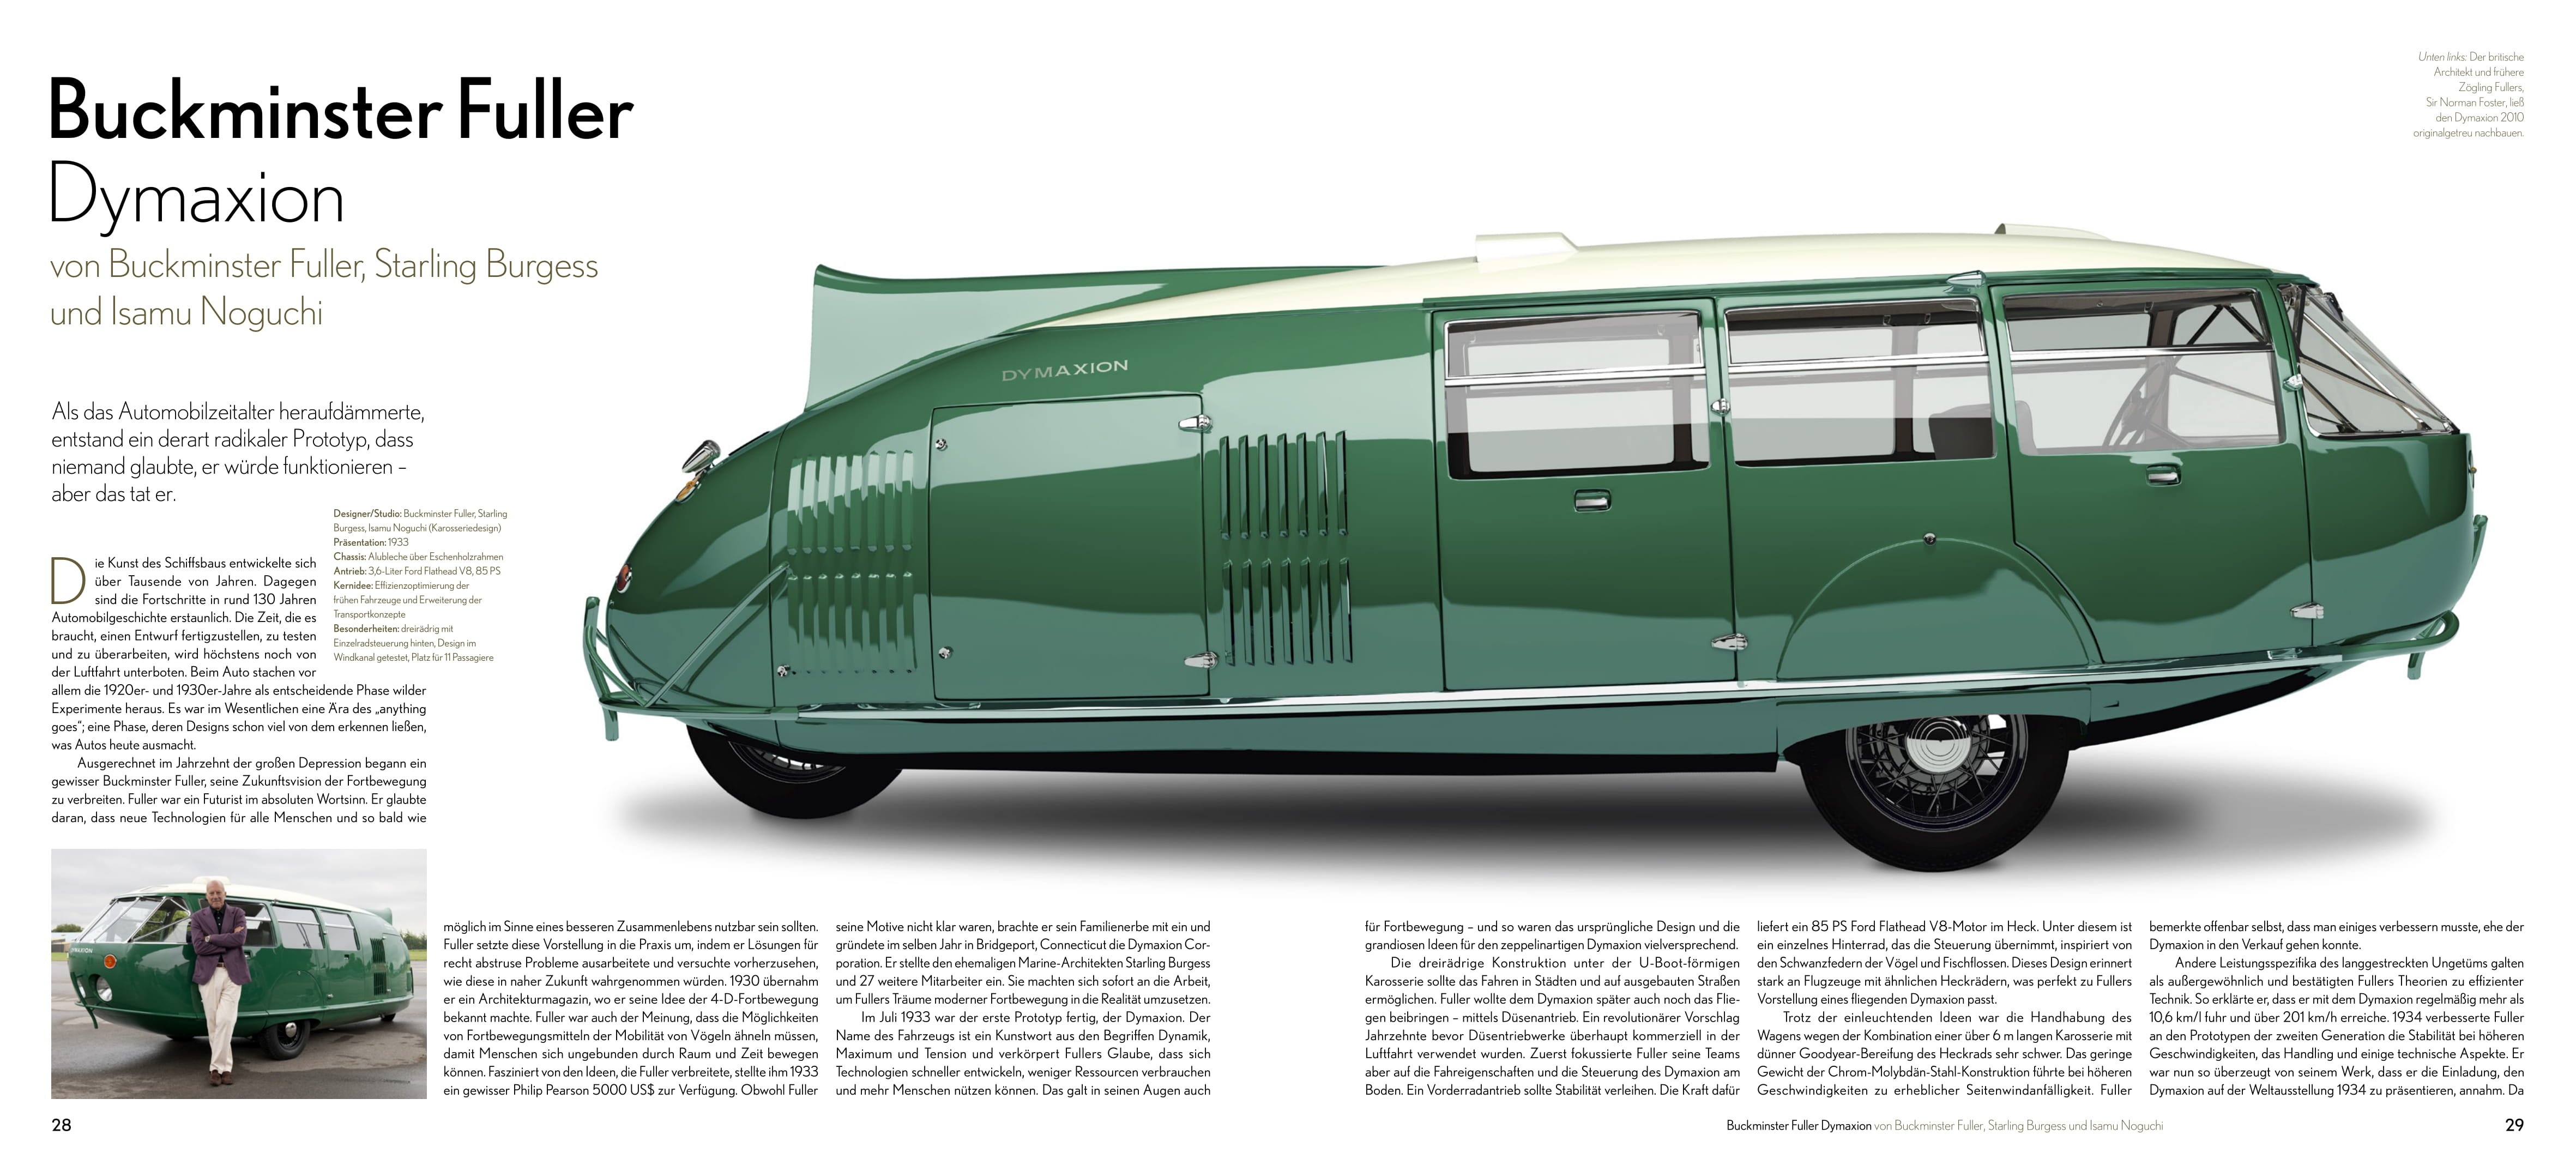 By Jan Baedeker from Fast Forward - the Cars of the Future, the Future of Cars copyright Gestalten 2017